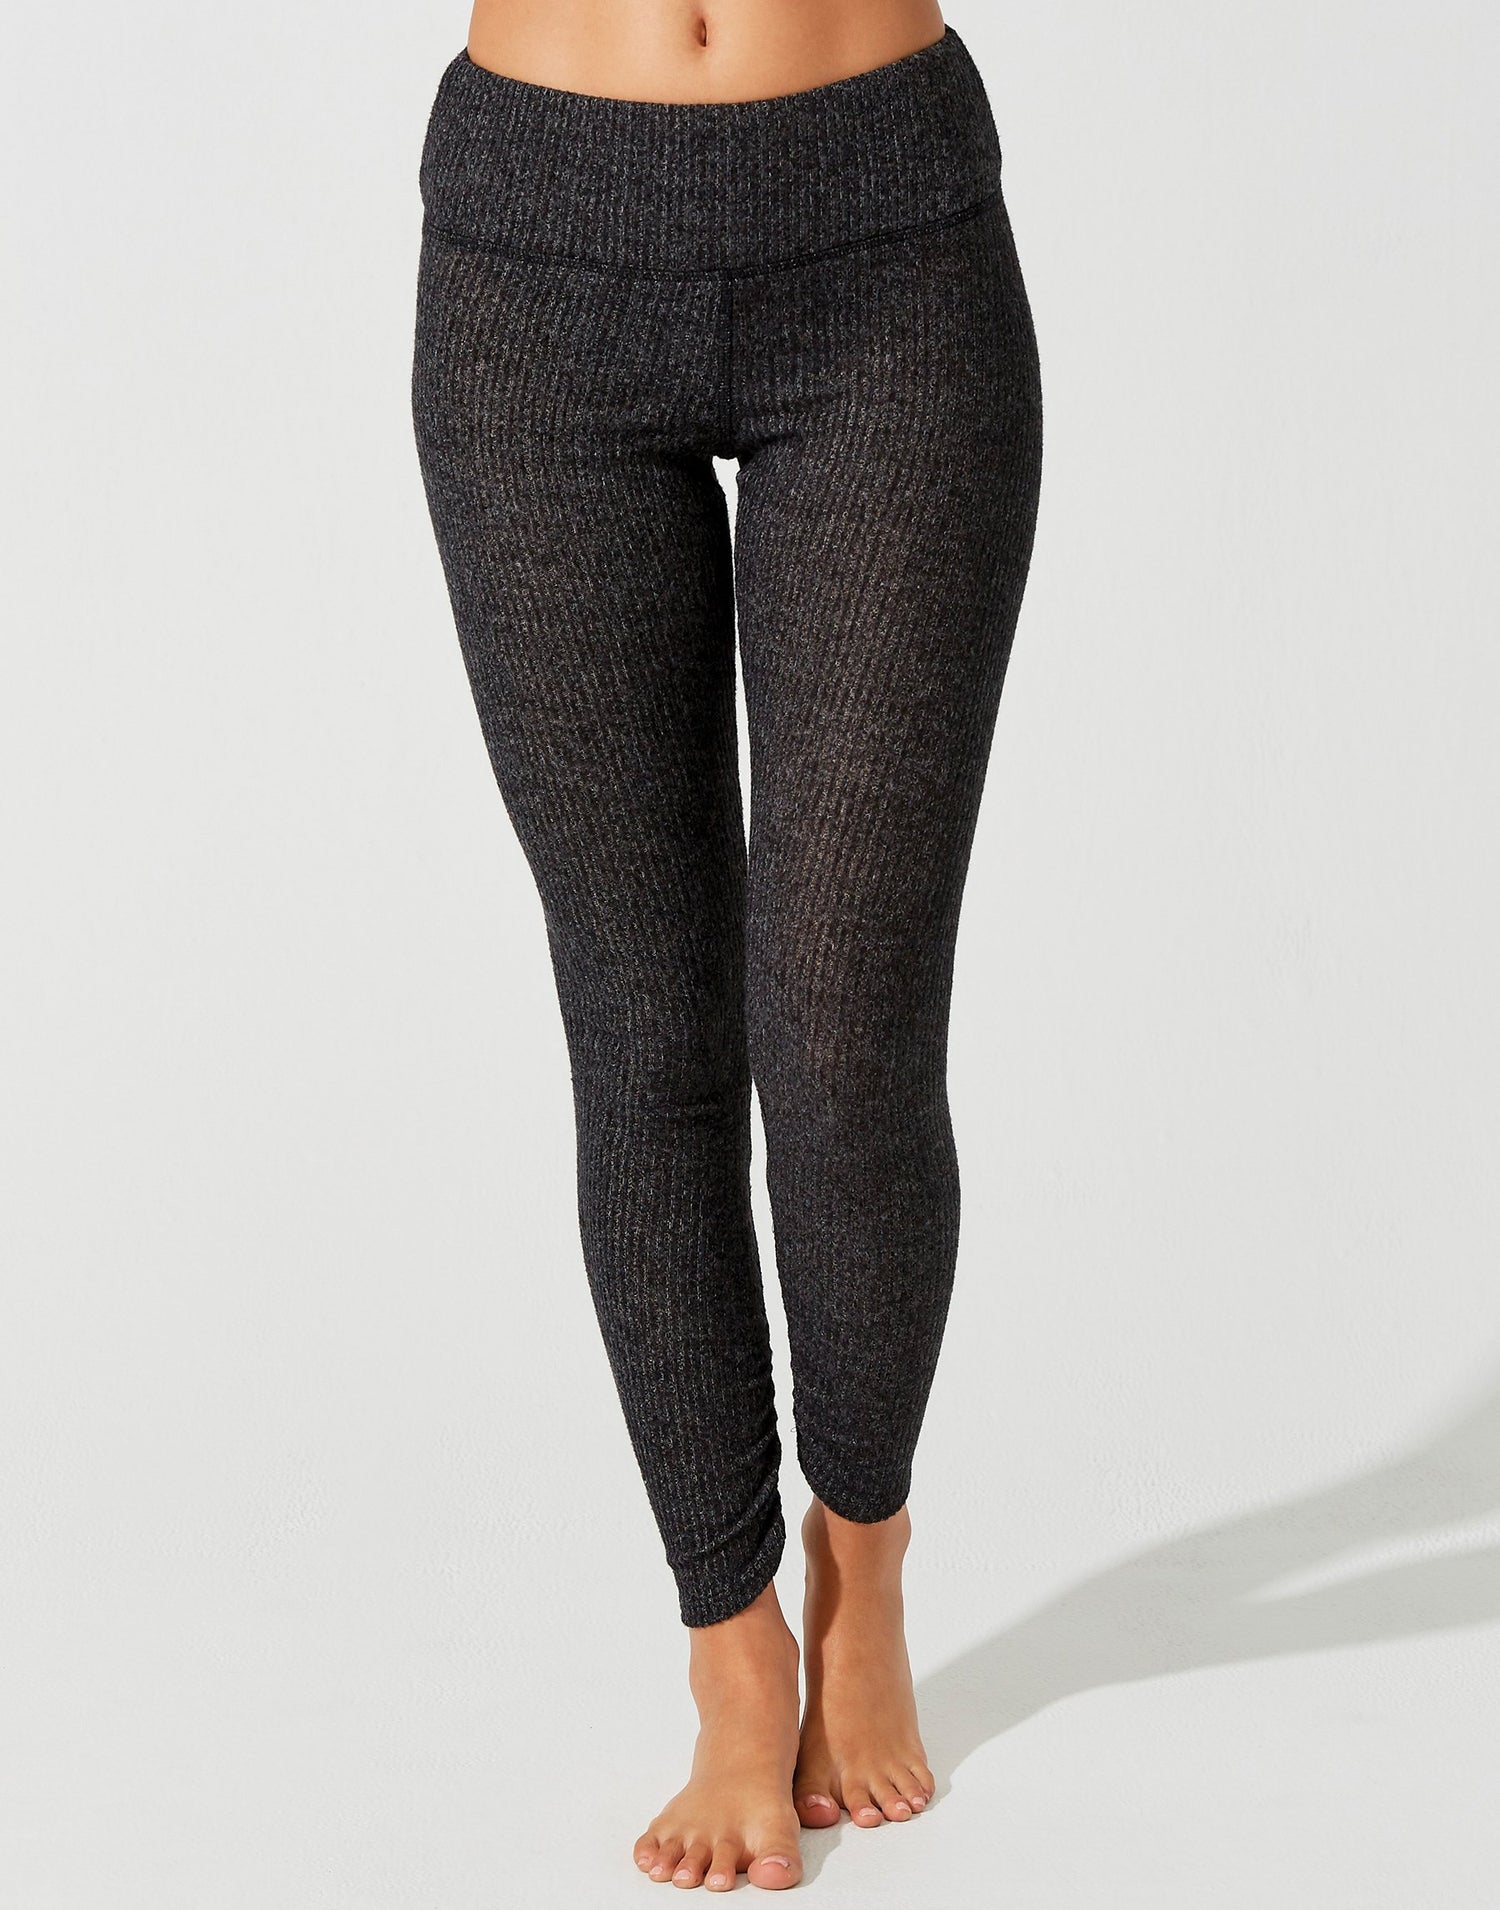 Josie Legging in Black Rib with Ruching at the Bottom Leg - alternate front view